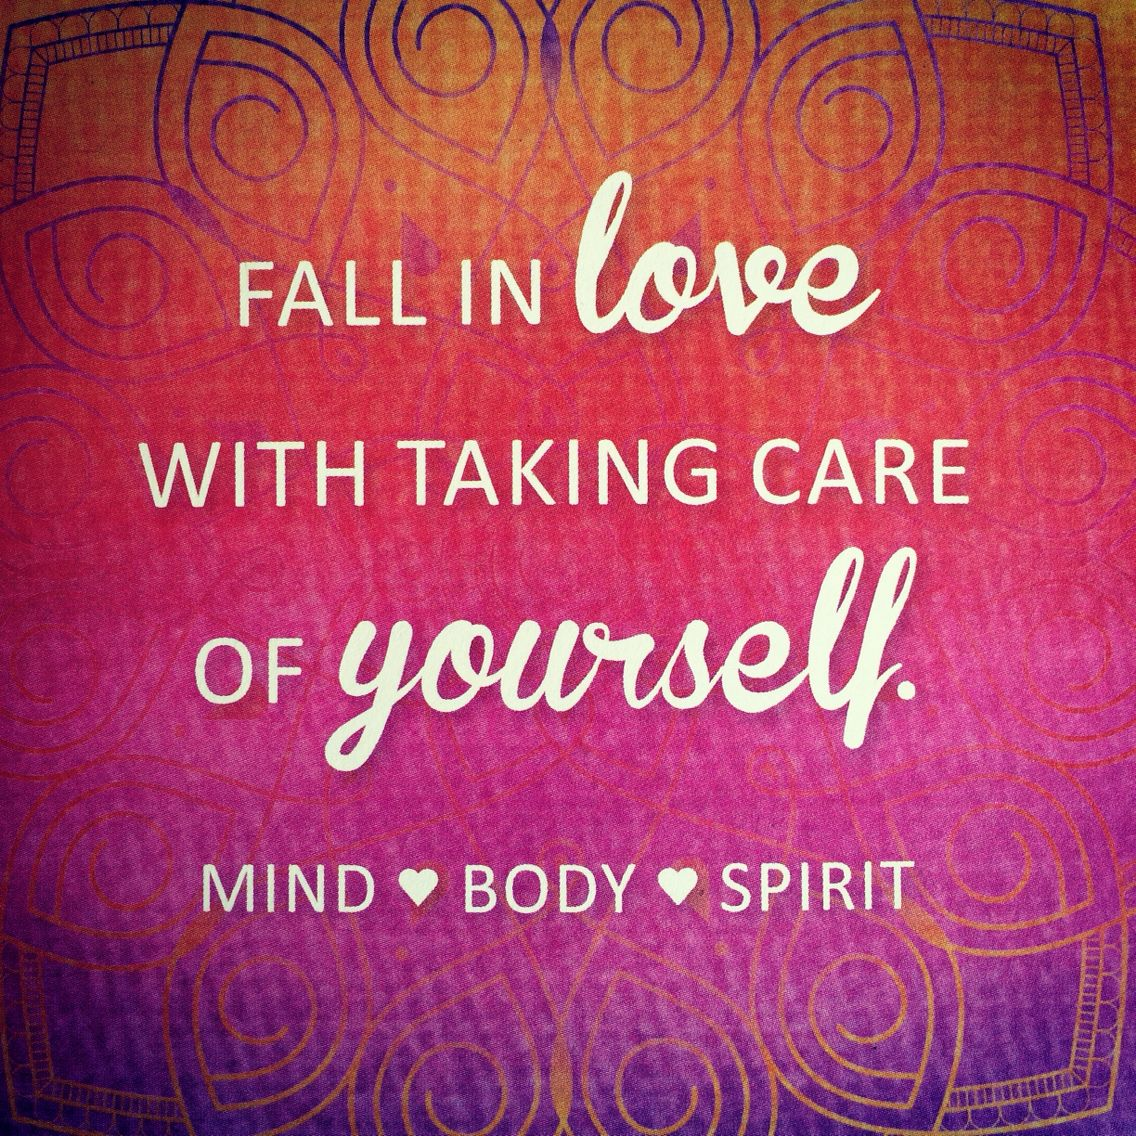 Fall In Love With Taking Care Of Yourself. MIND